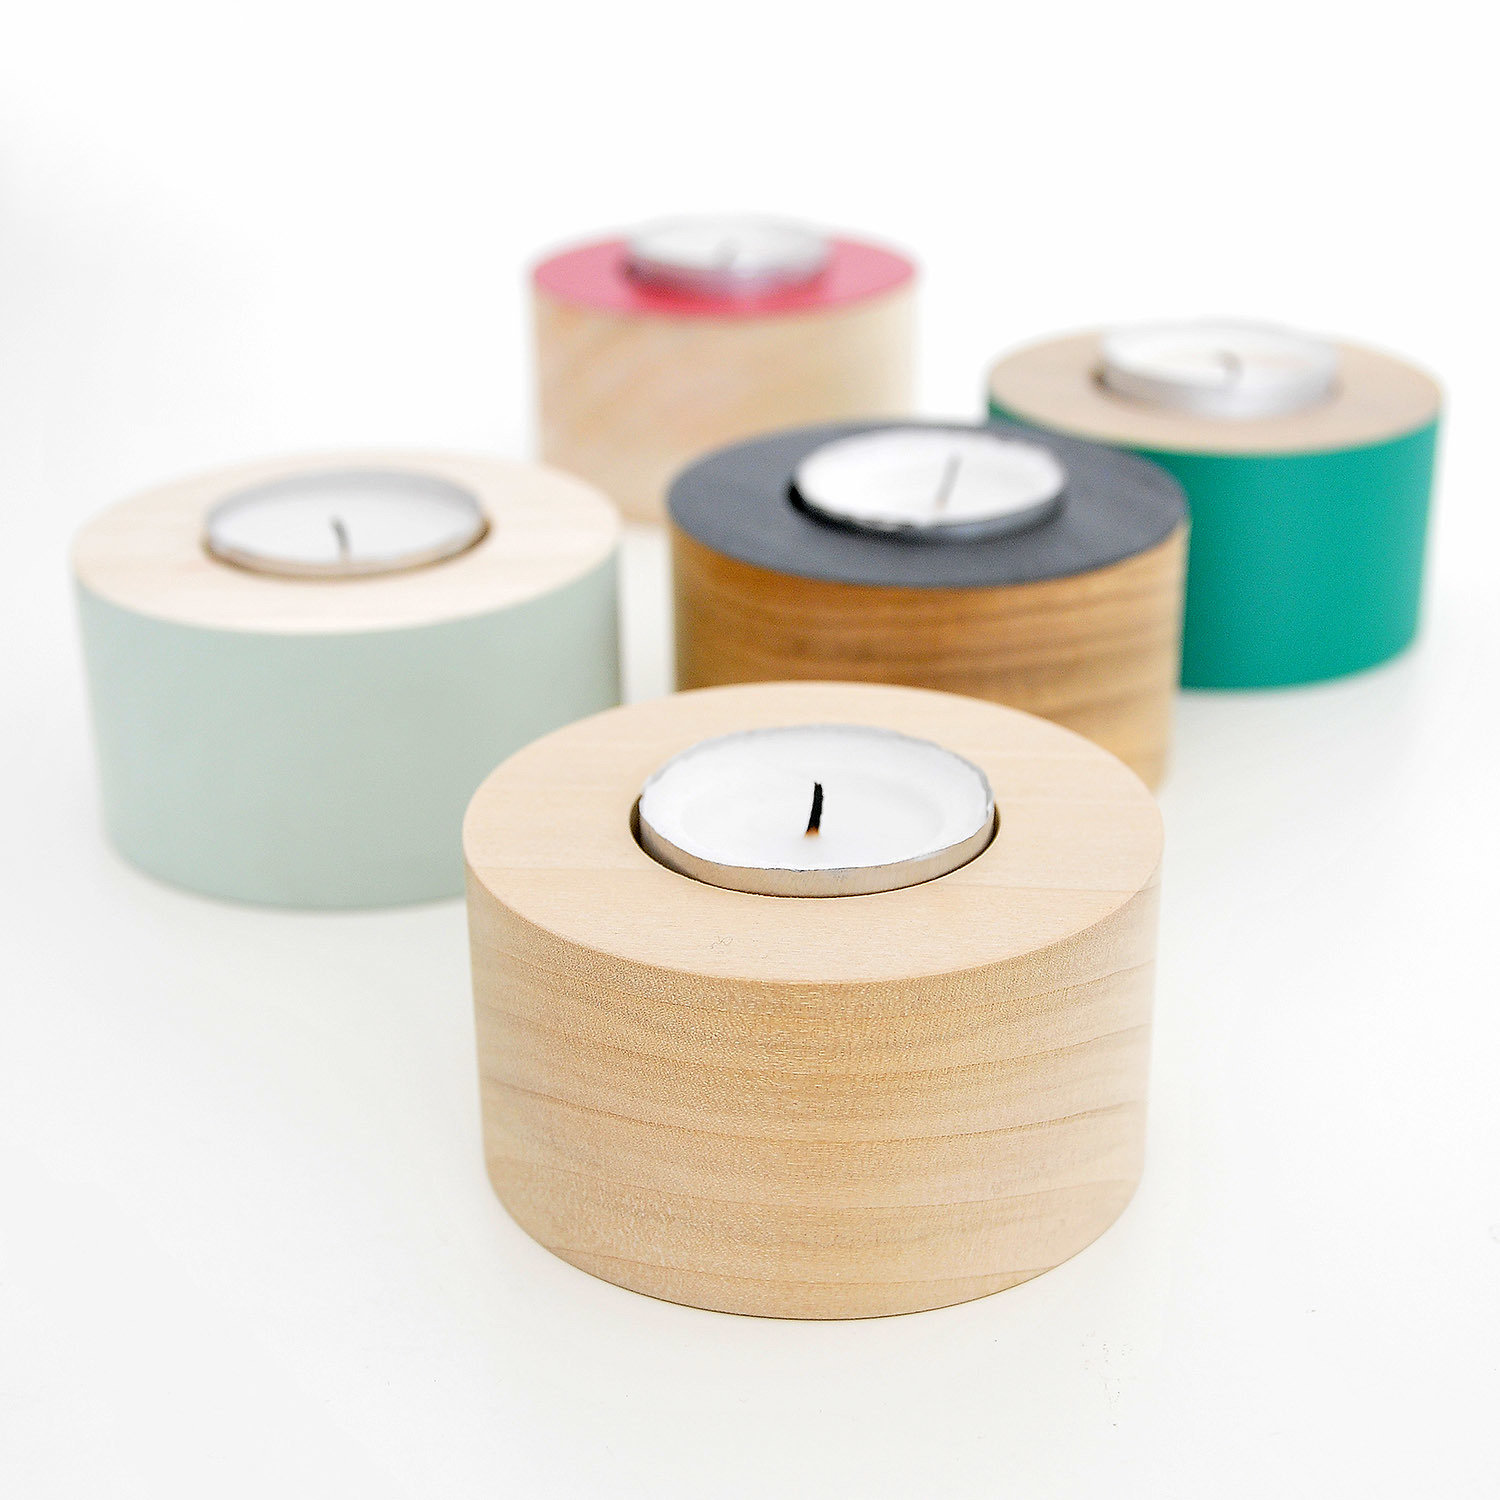 Domino Tealight Holder - Base